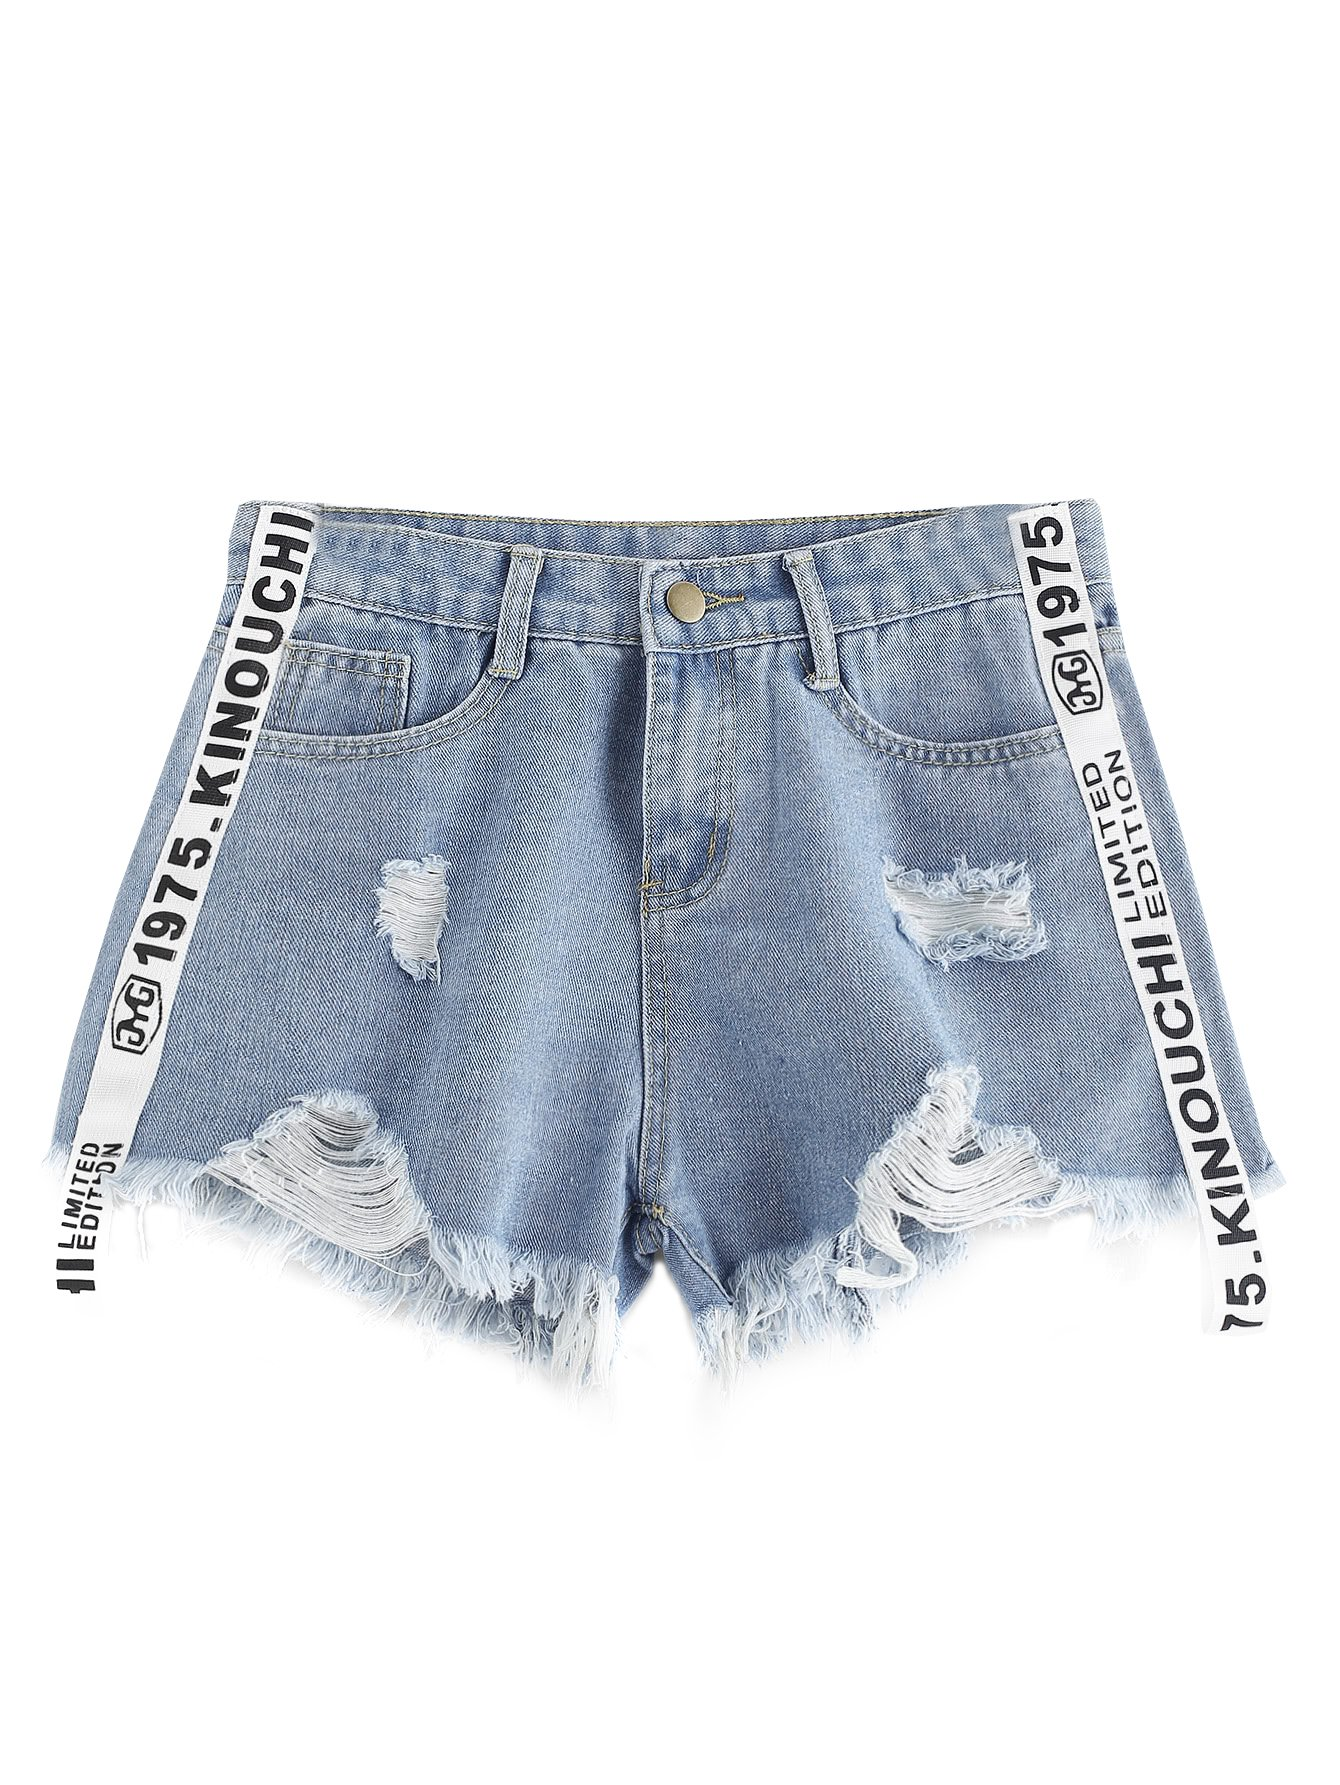 MakeMeChic Women's Bleached Frayed Raw Hem Ripped Pocket Distressed Jean Denim Shorts 9-Blue L